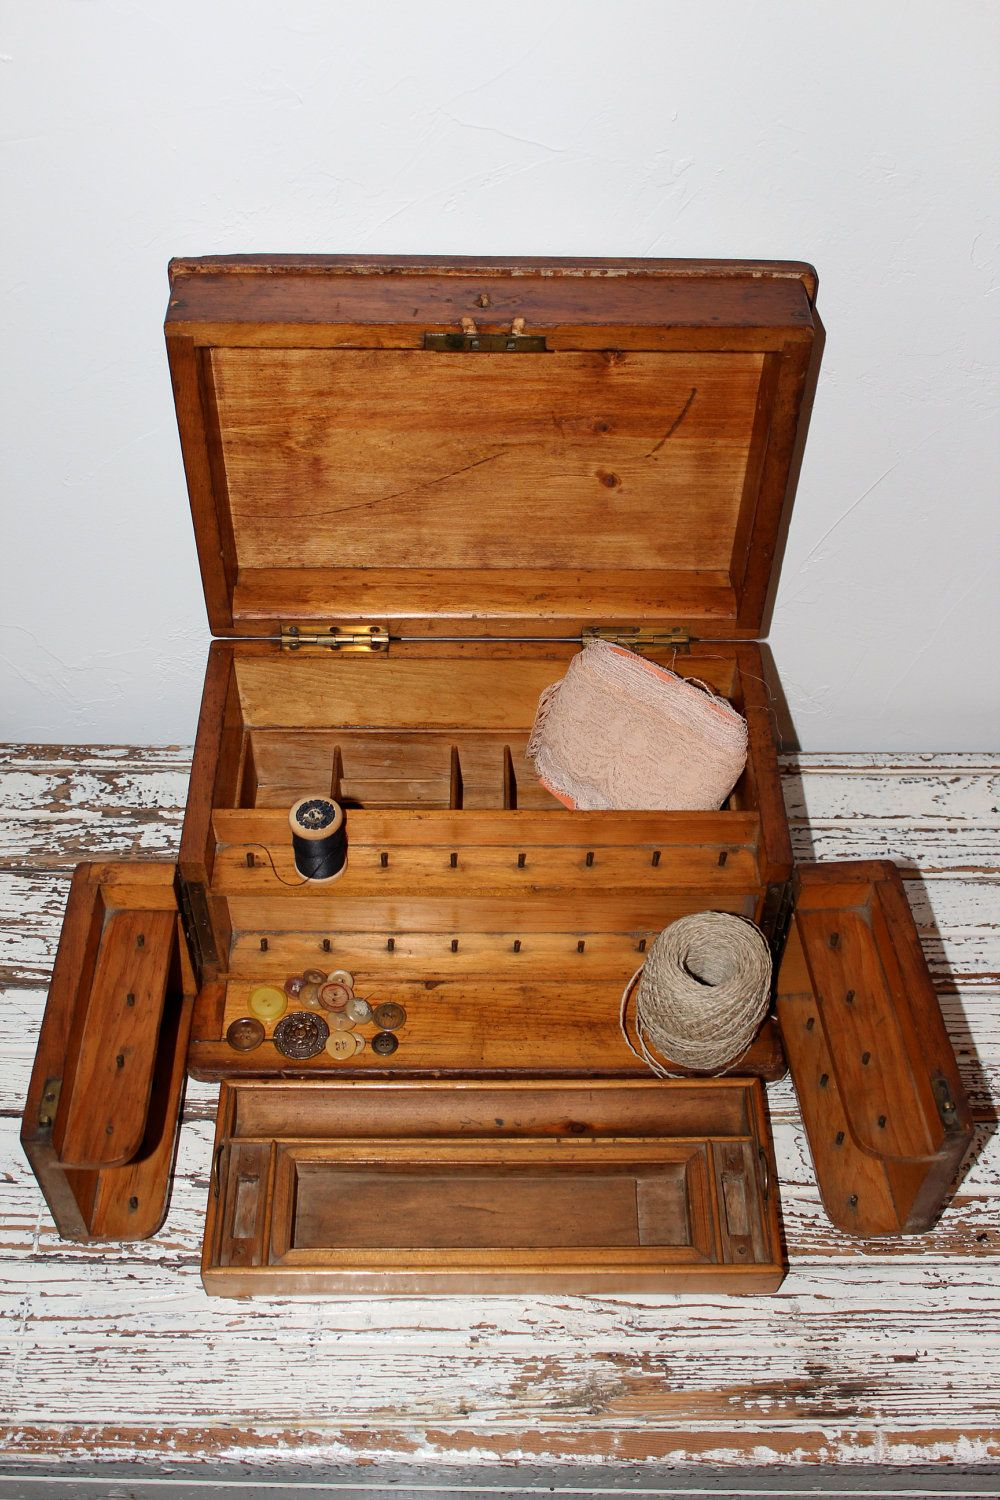 Vintage Wooden Sewing Box : vintage, wooden, sewing, Sewing, Antique., .00, Etsy., Vintage, Wooden